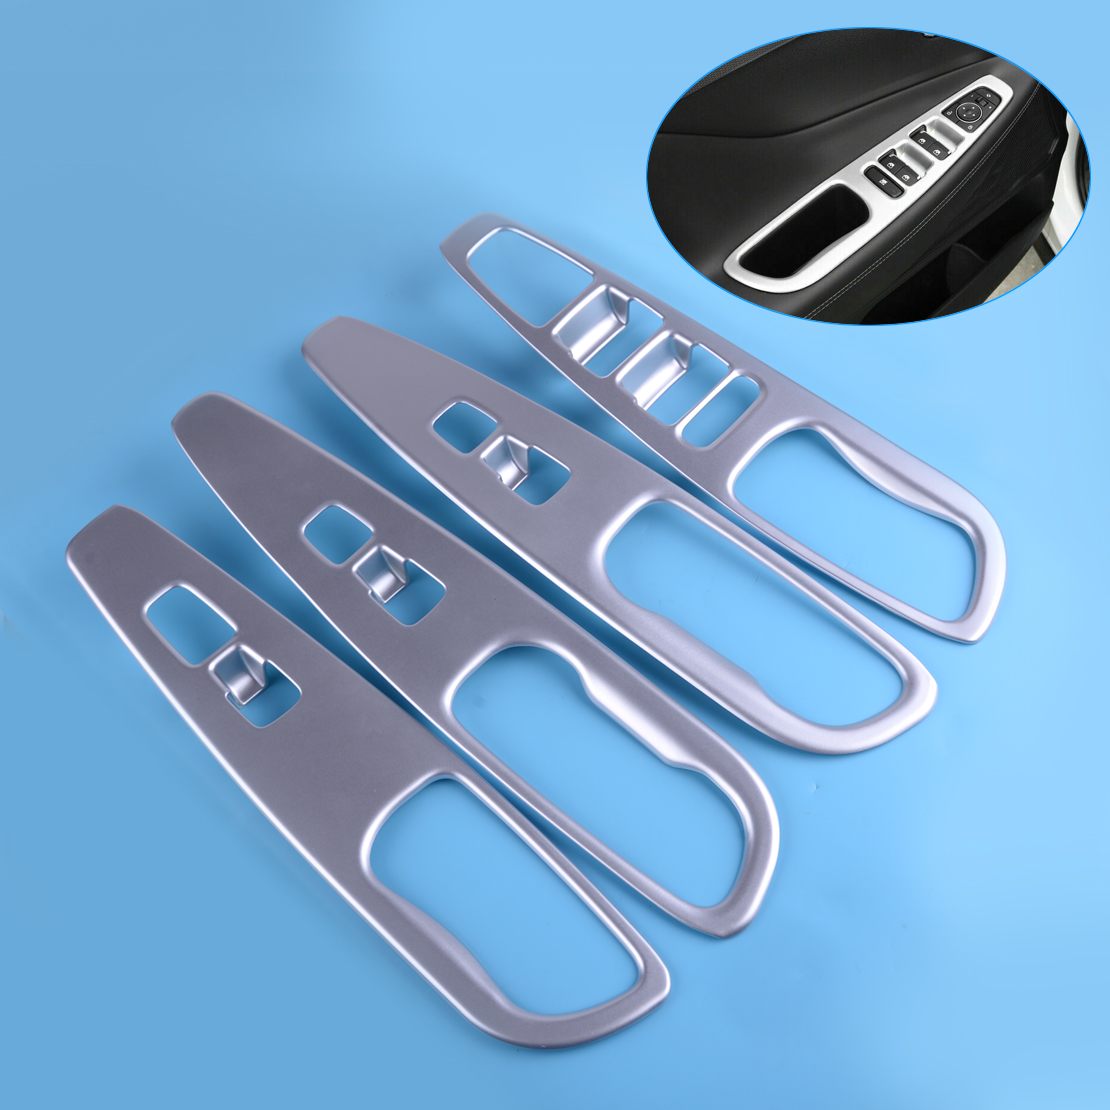 beler ABS 4PCS Silver Door Armrest Window Switch Cover Trim Panel Fit for <font><b>Hyundai</b></font> <font><b>Santa</b></font> <font><b>Fe</b></font> <font><b>2019</b></font> image